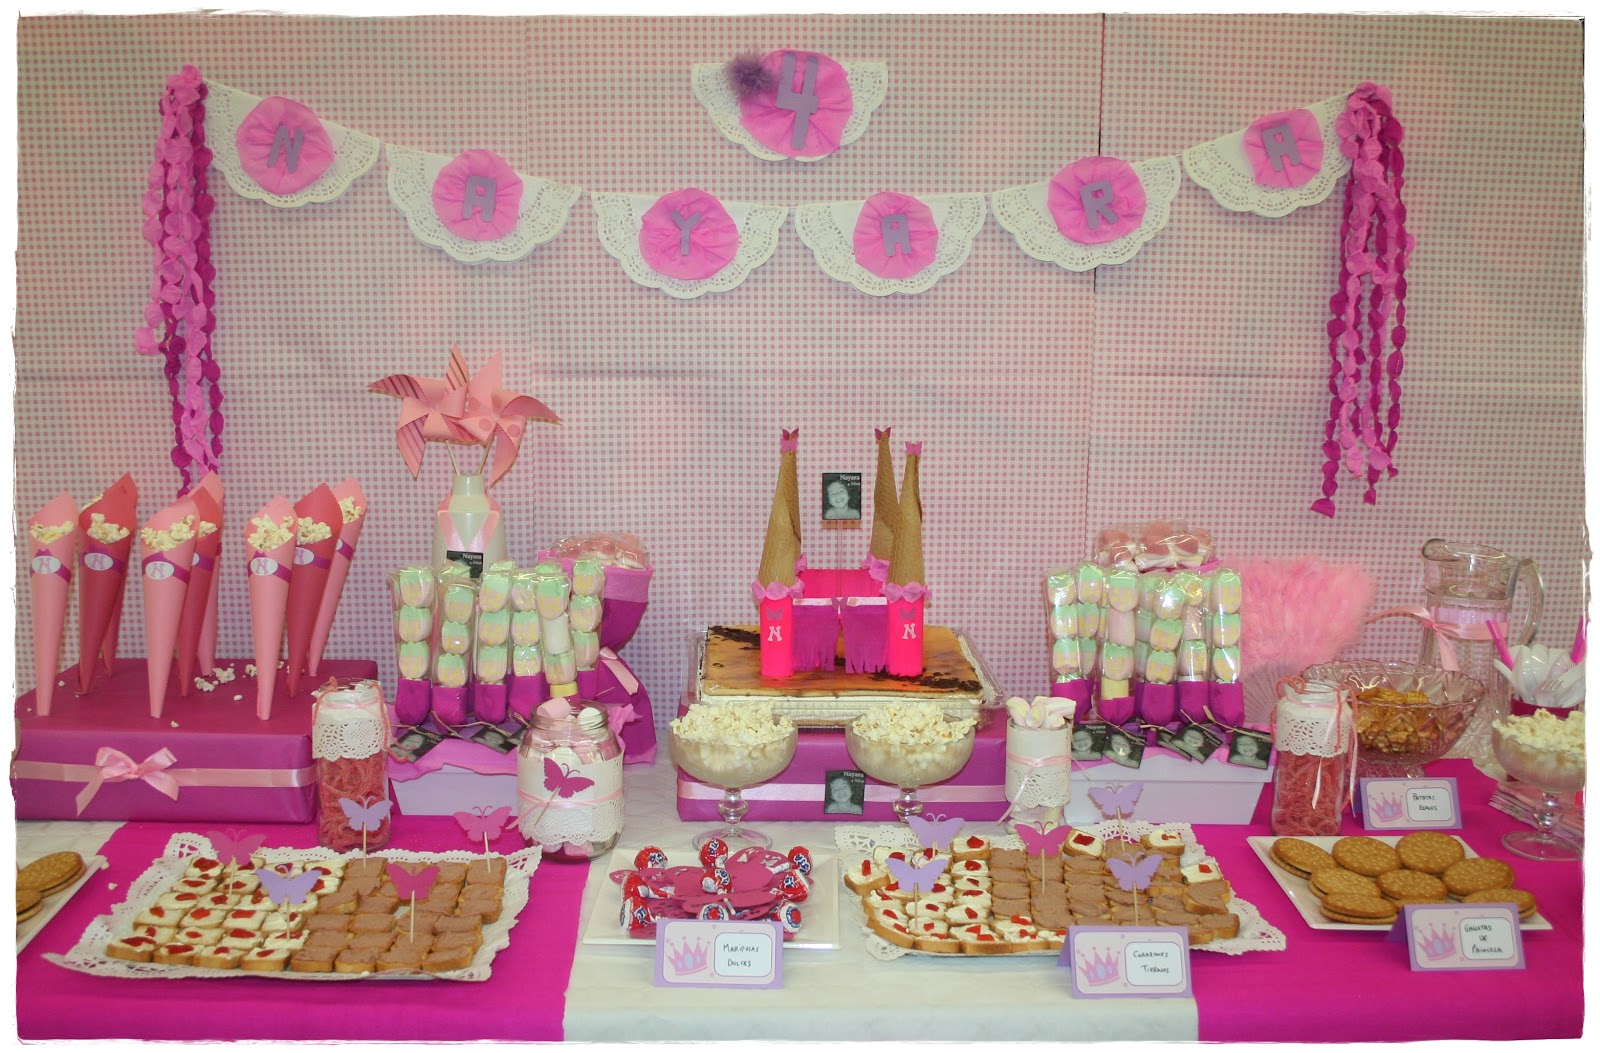 Merbo events cumplea os de princesas for Decoracion cumpleanos princesas